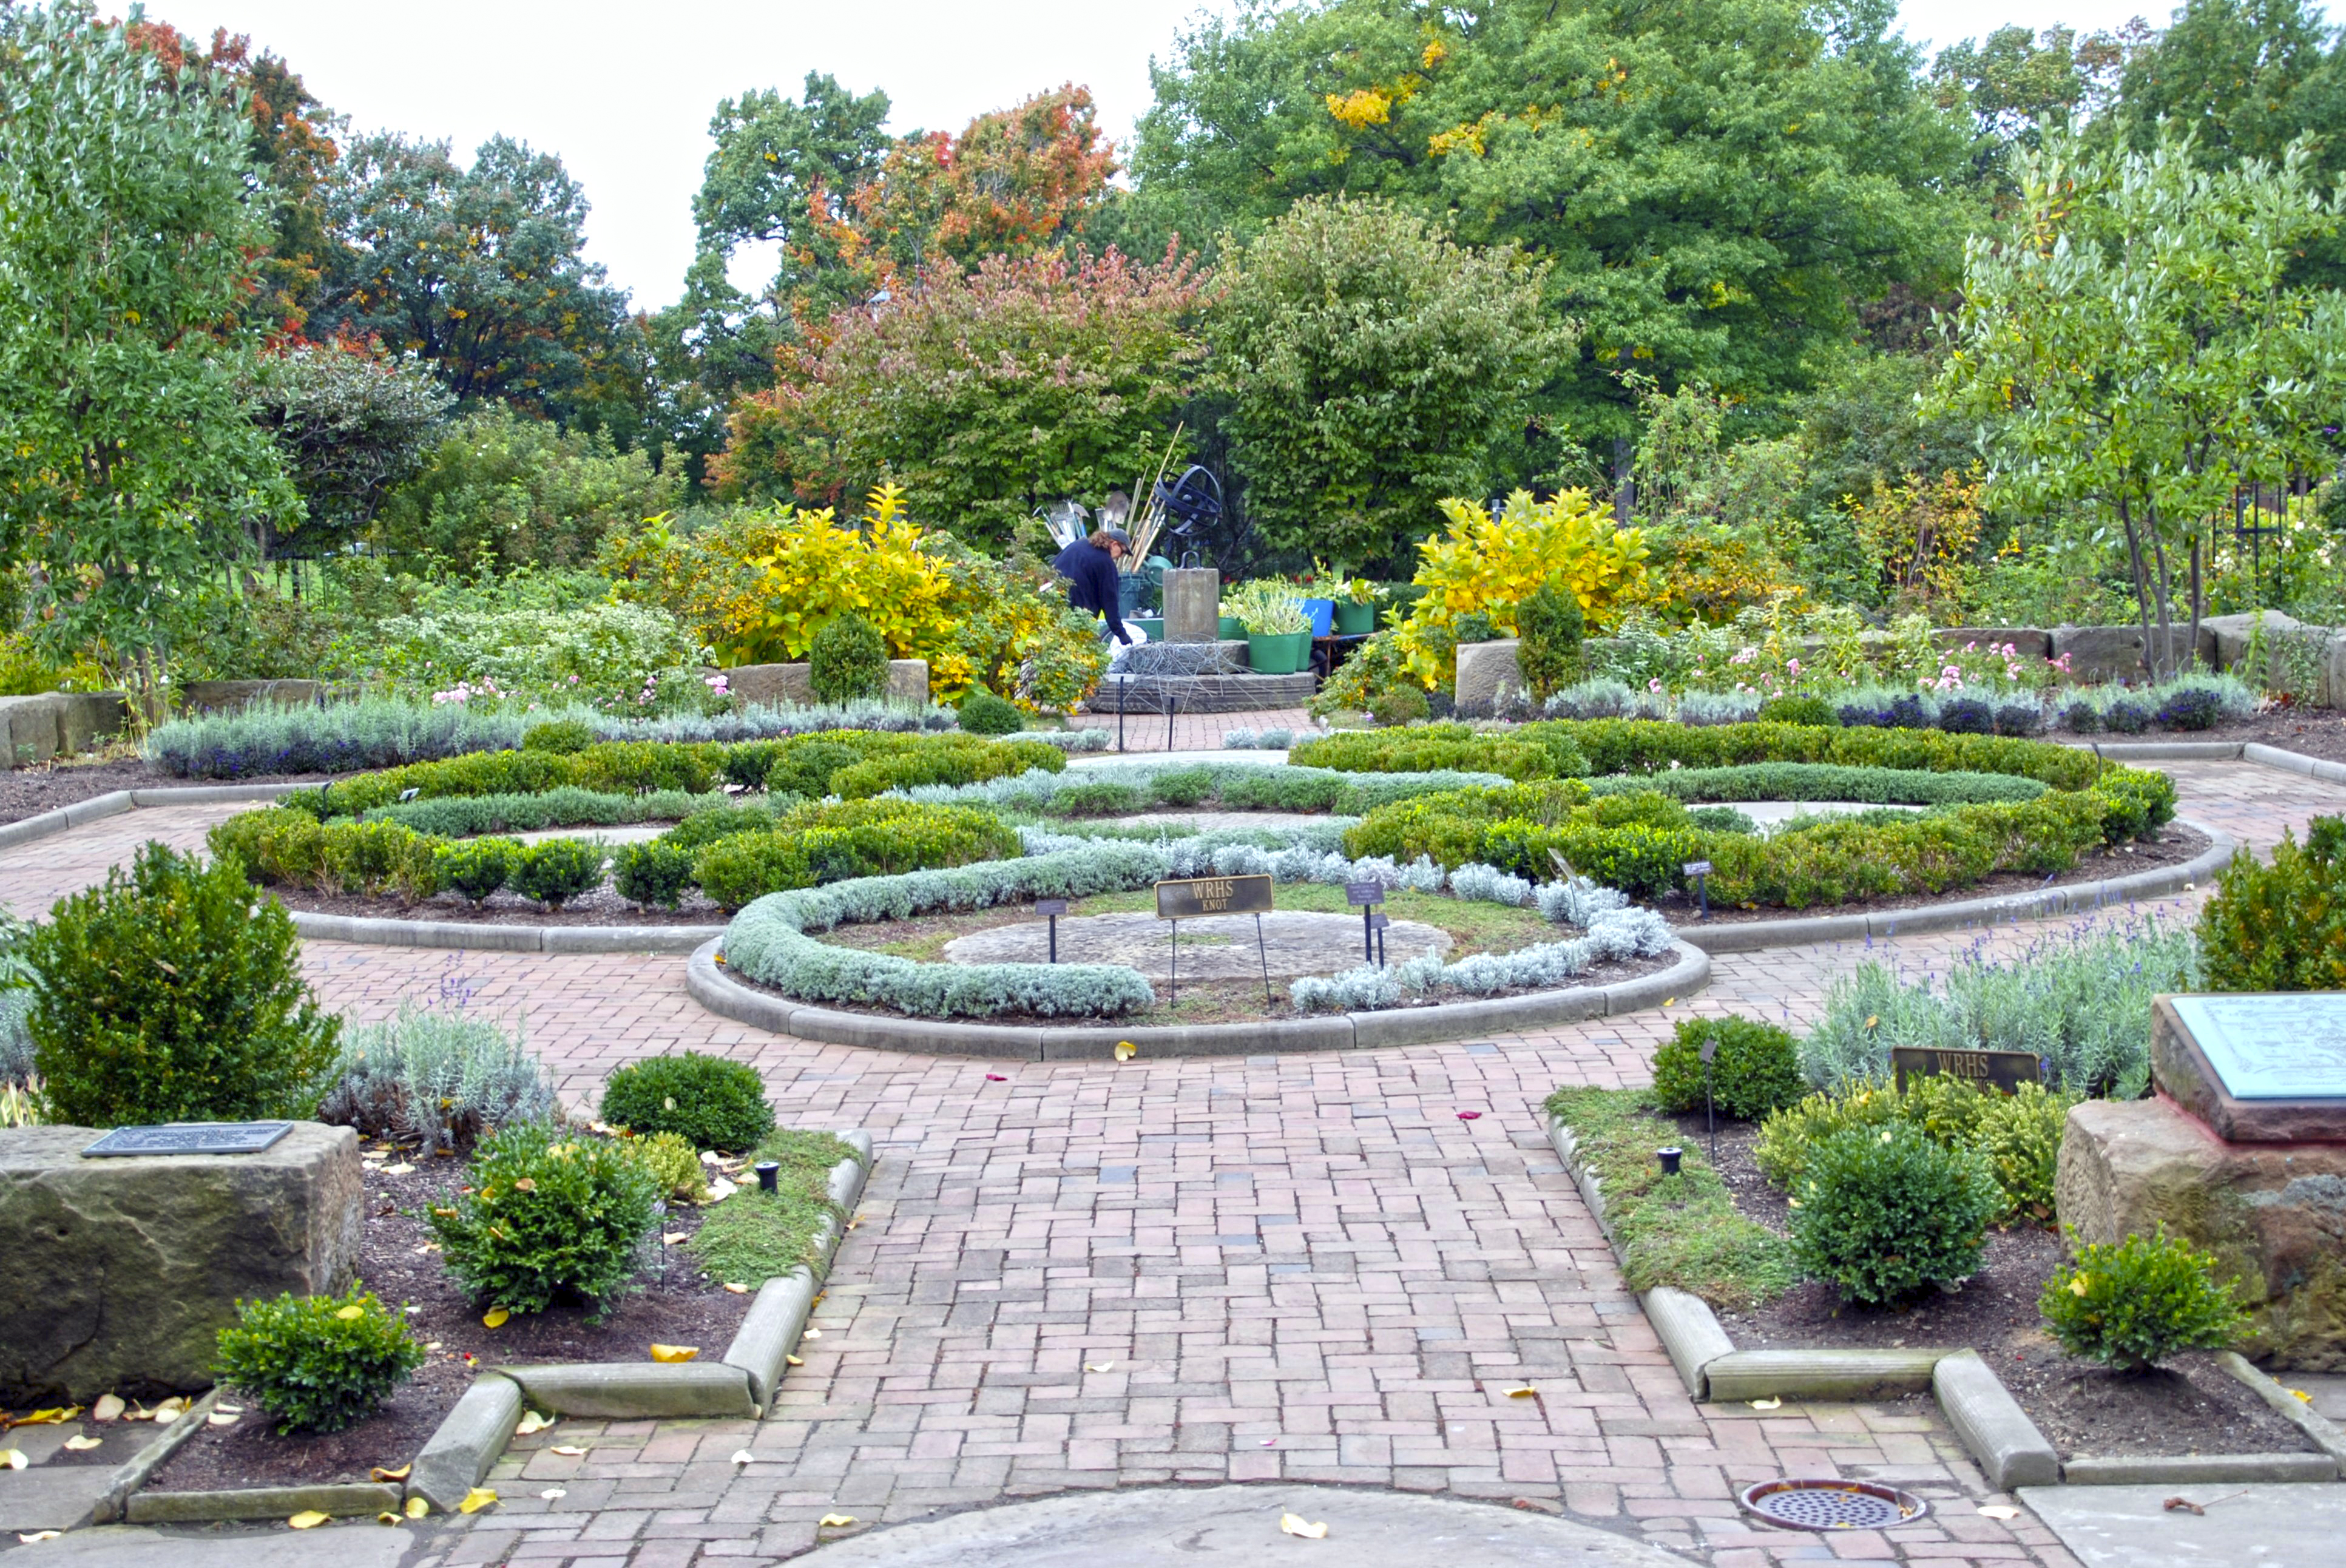 Knot and Fragrance Garden - October